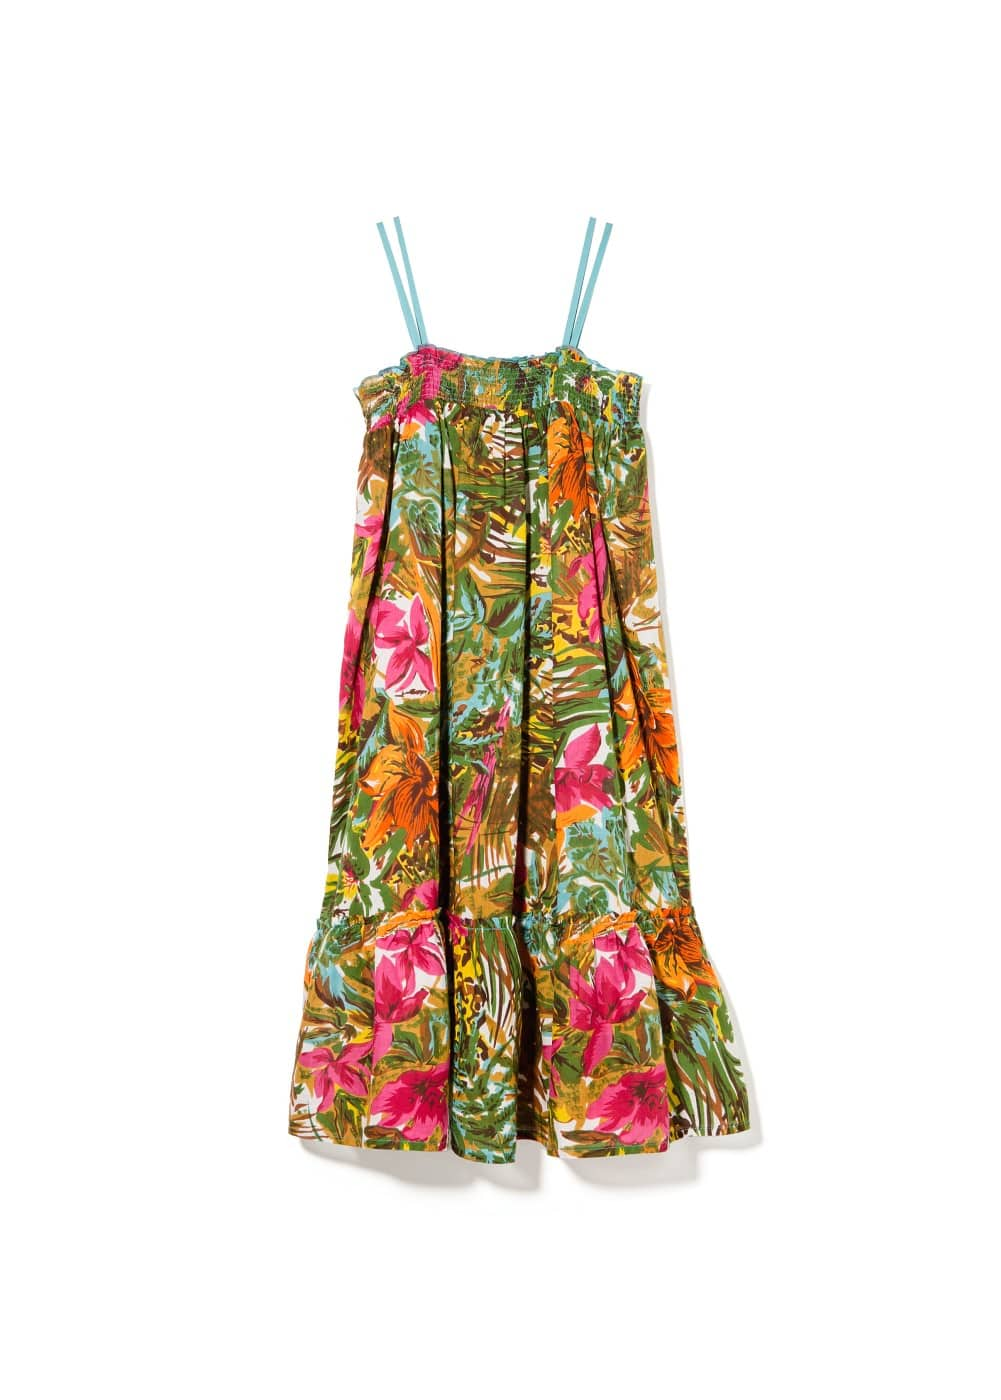 Ruffle tropical dress